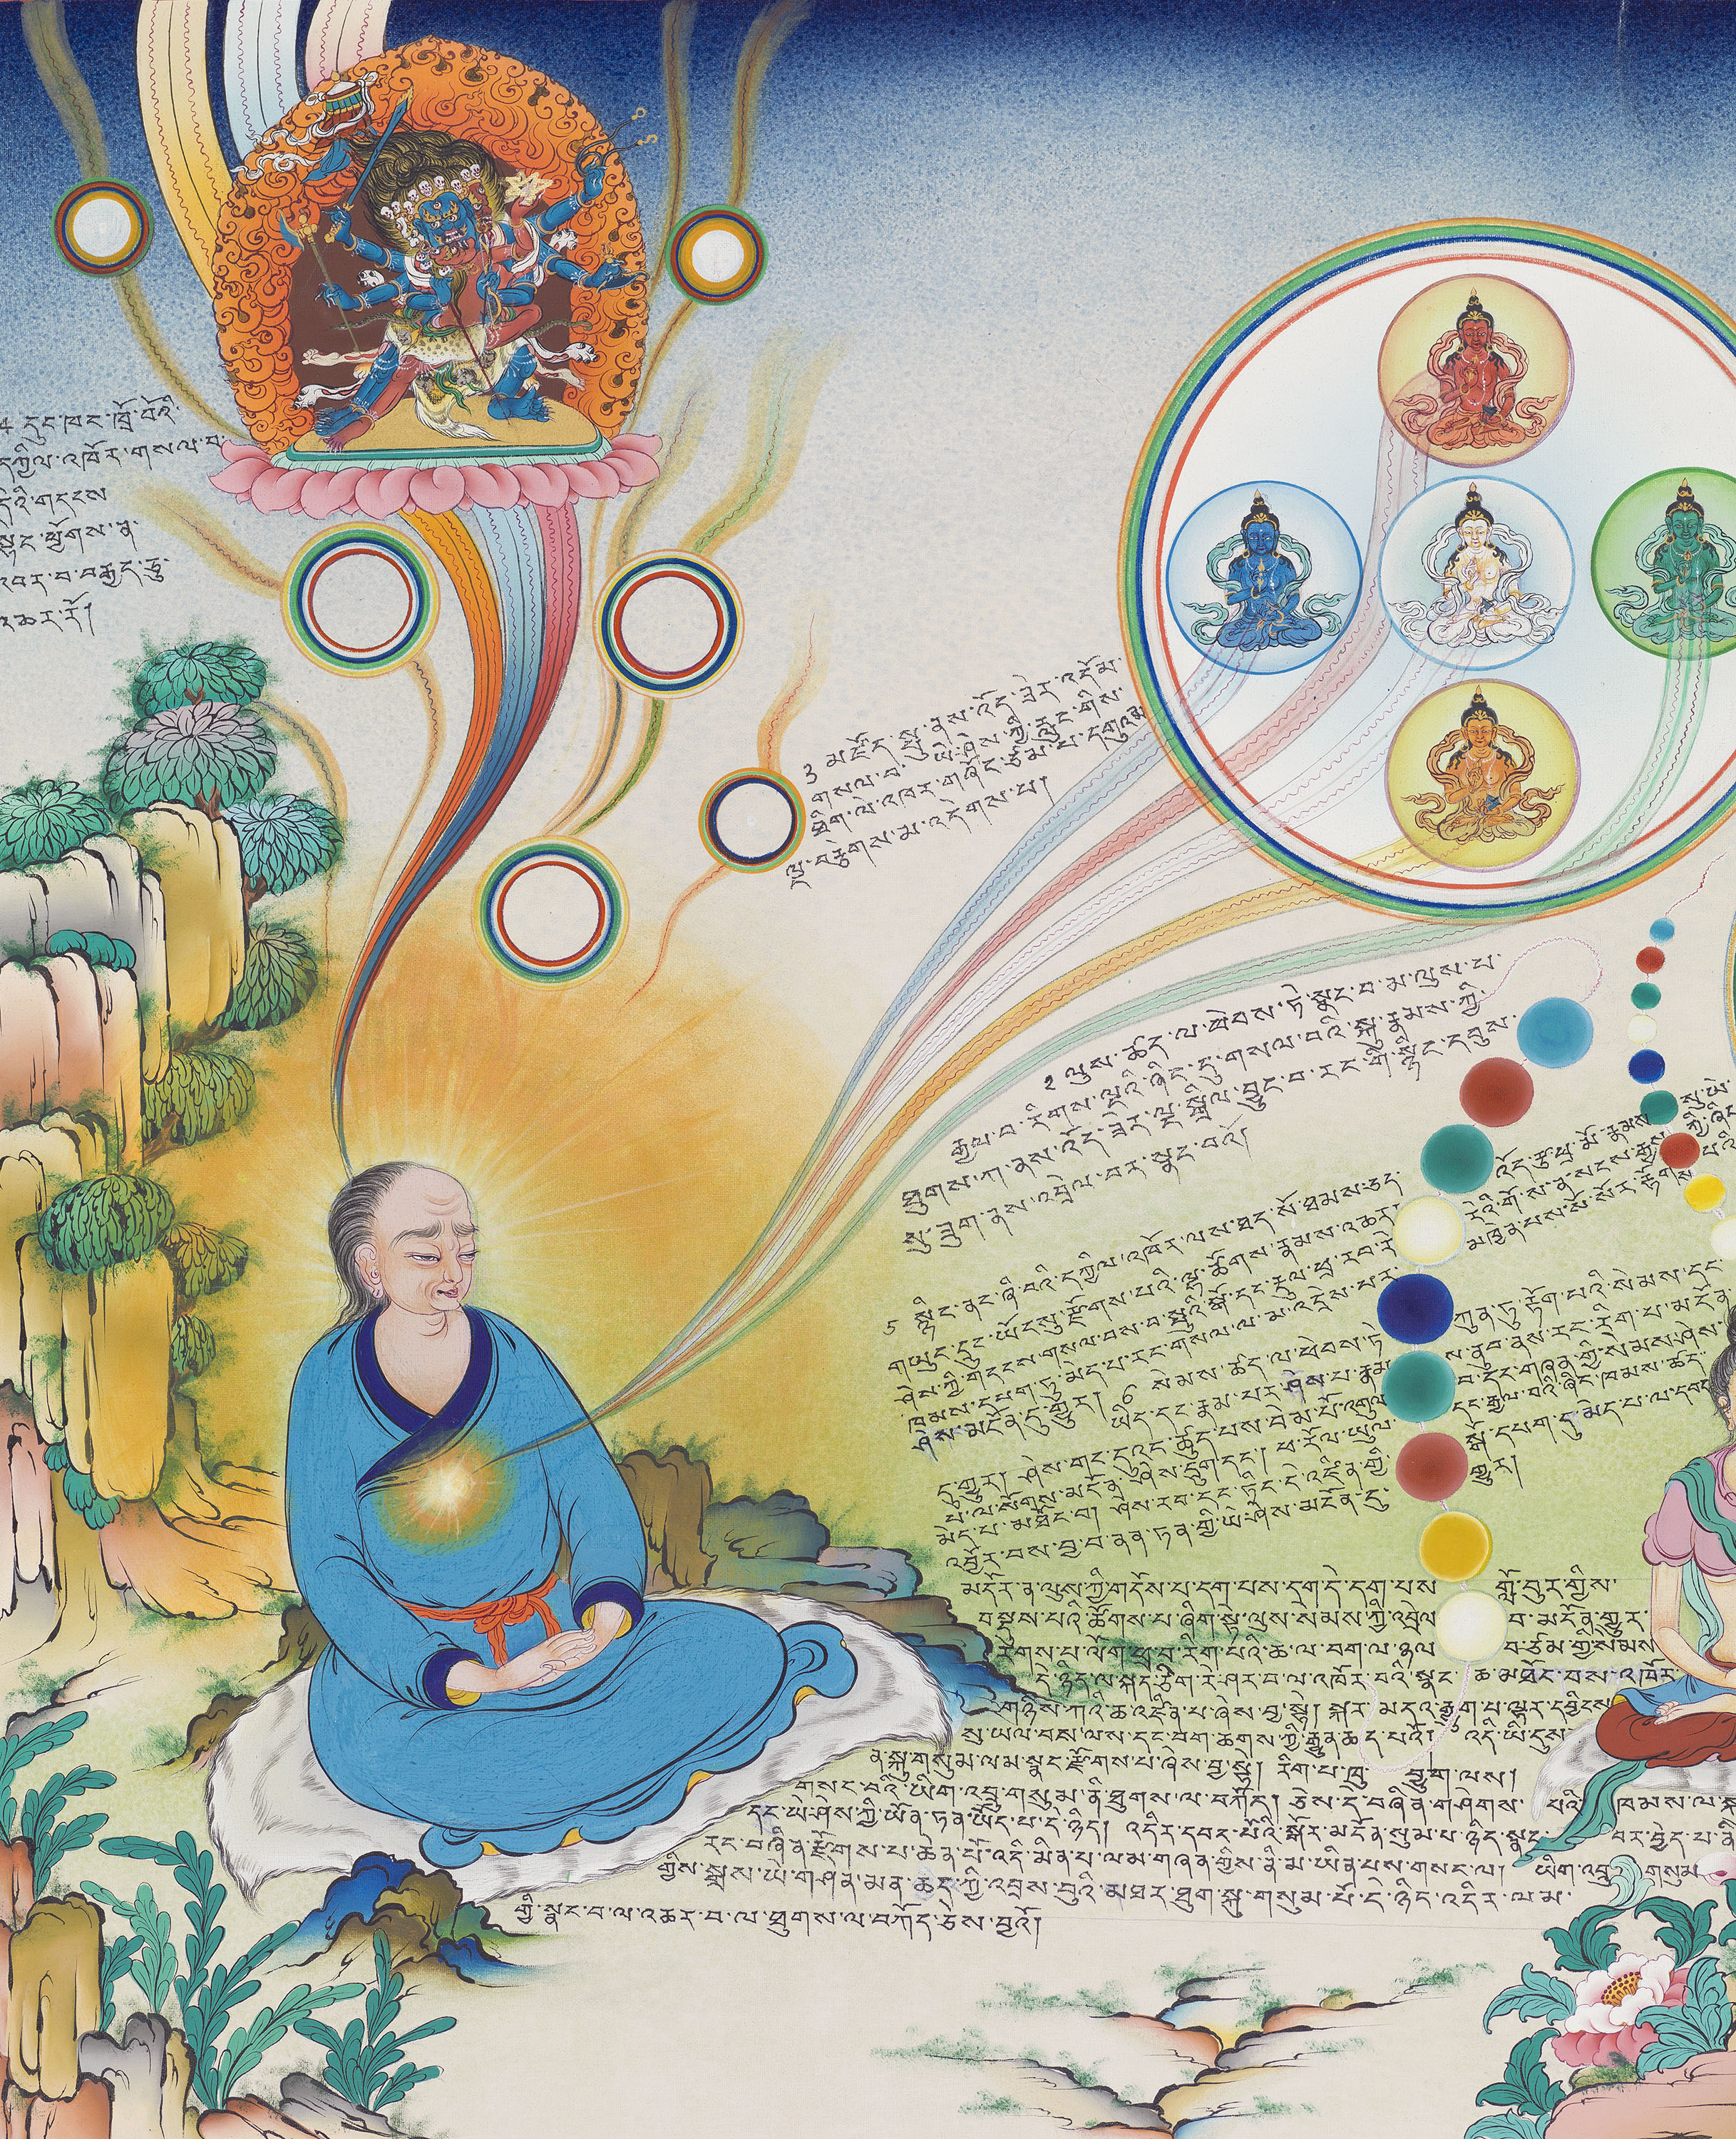 The spontaneous purification of the subtle channels and energies as part of the visionary experience. (p.192)